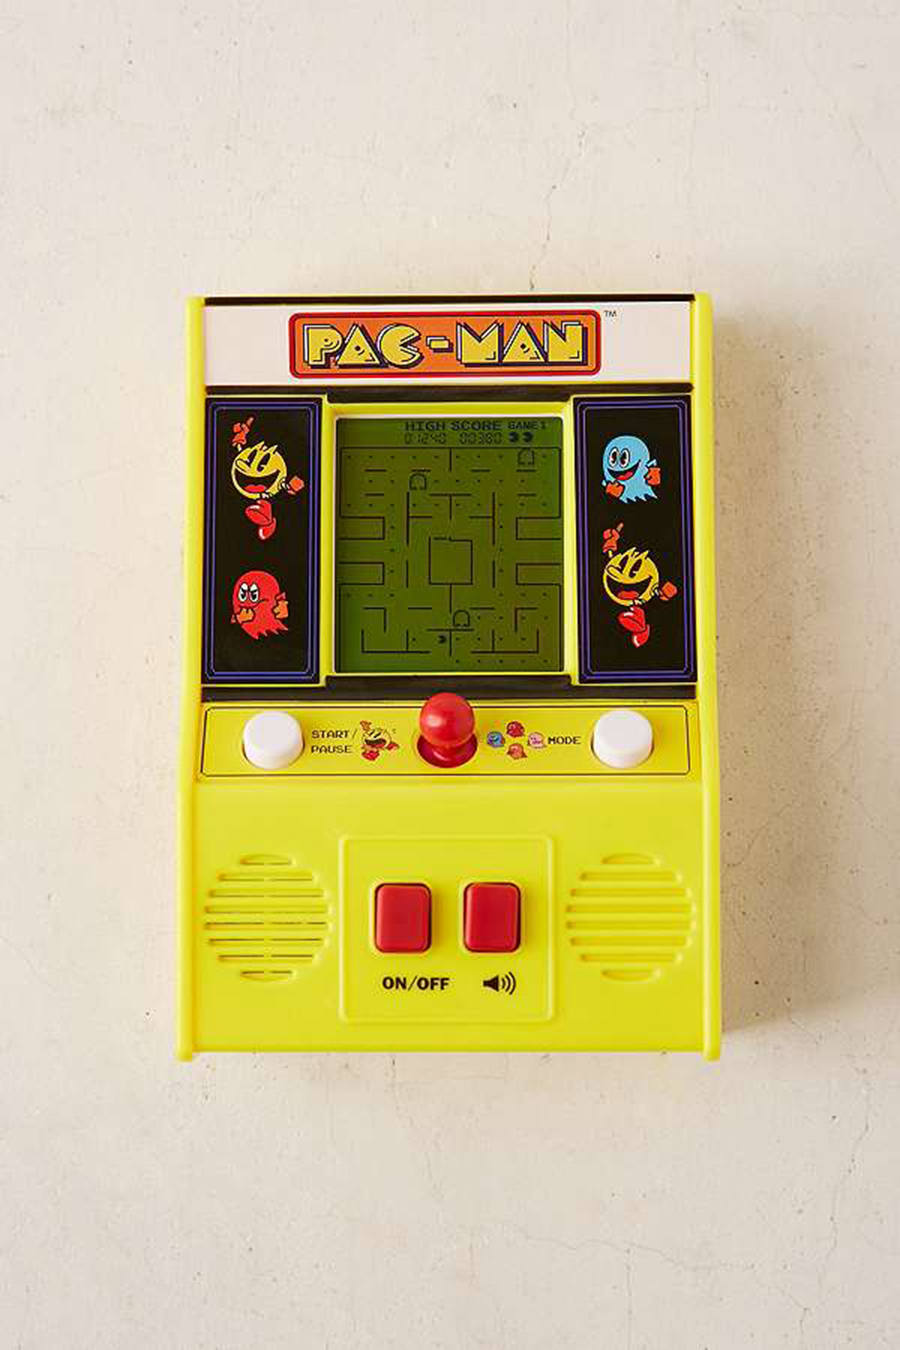 Urban Outfitters - Pac-Man Game - Guida ai Regali di Natale 2017 - Ultra Pop